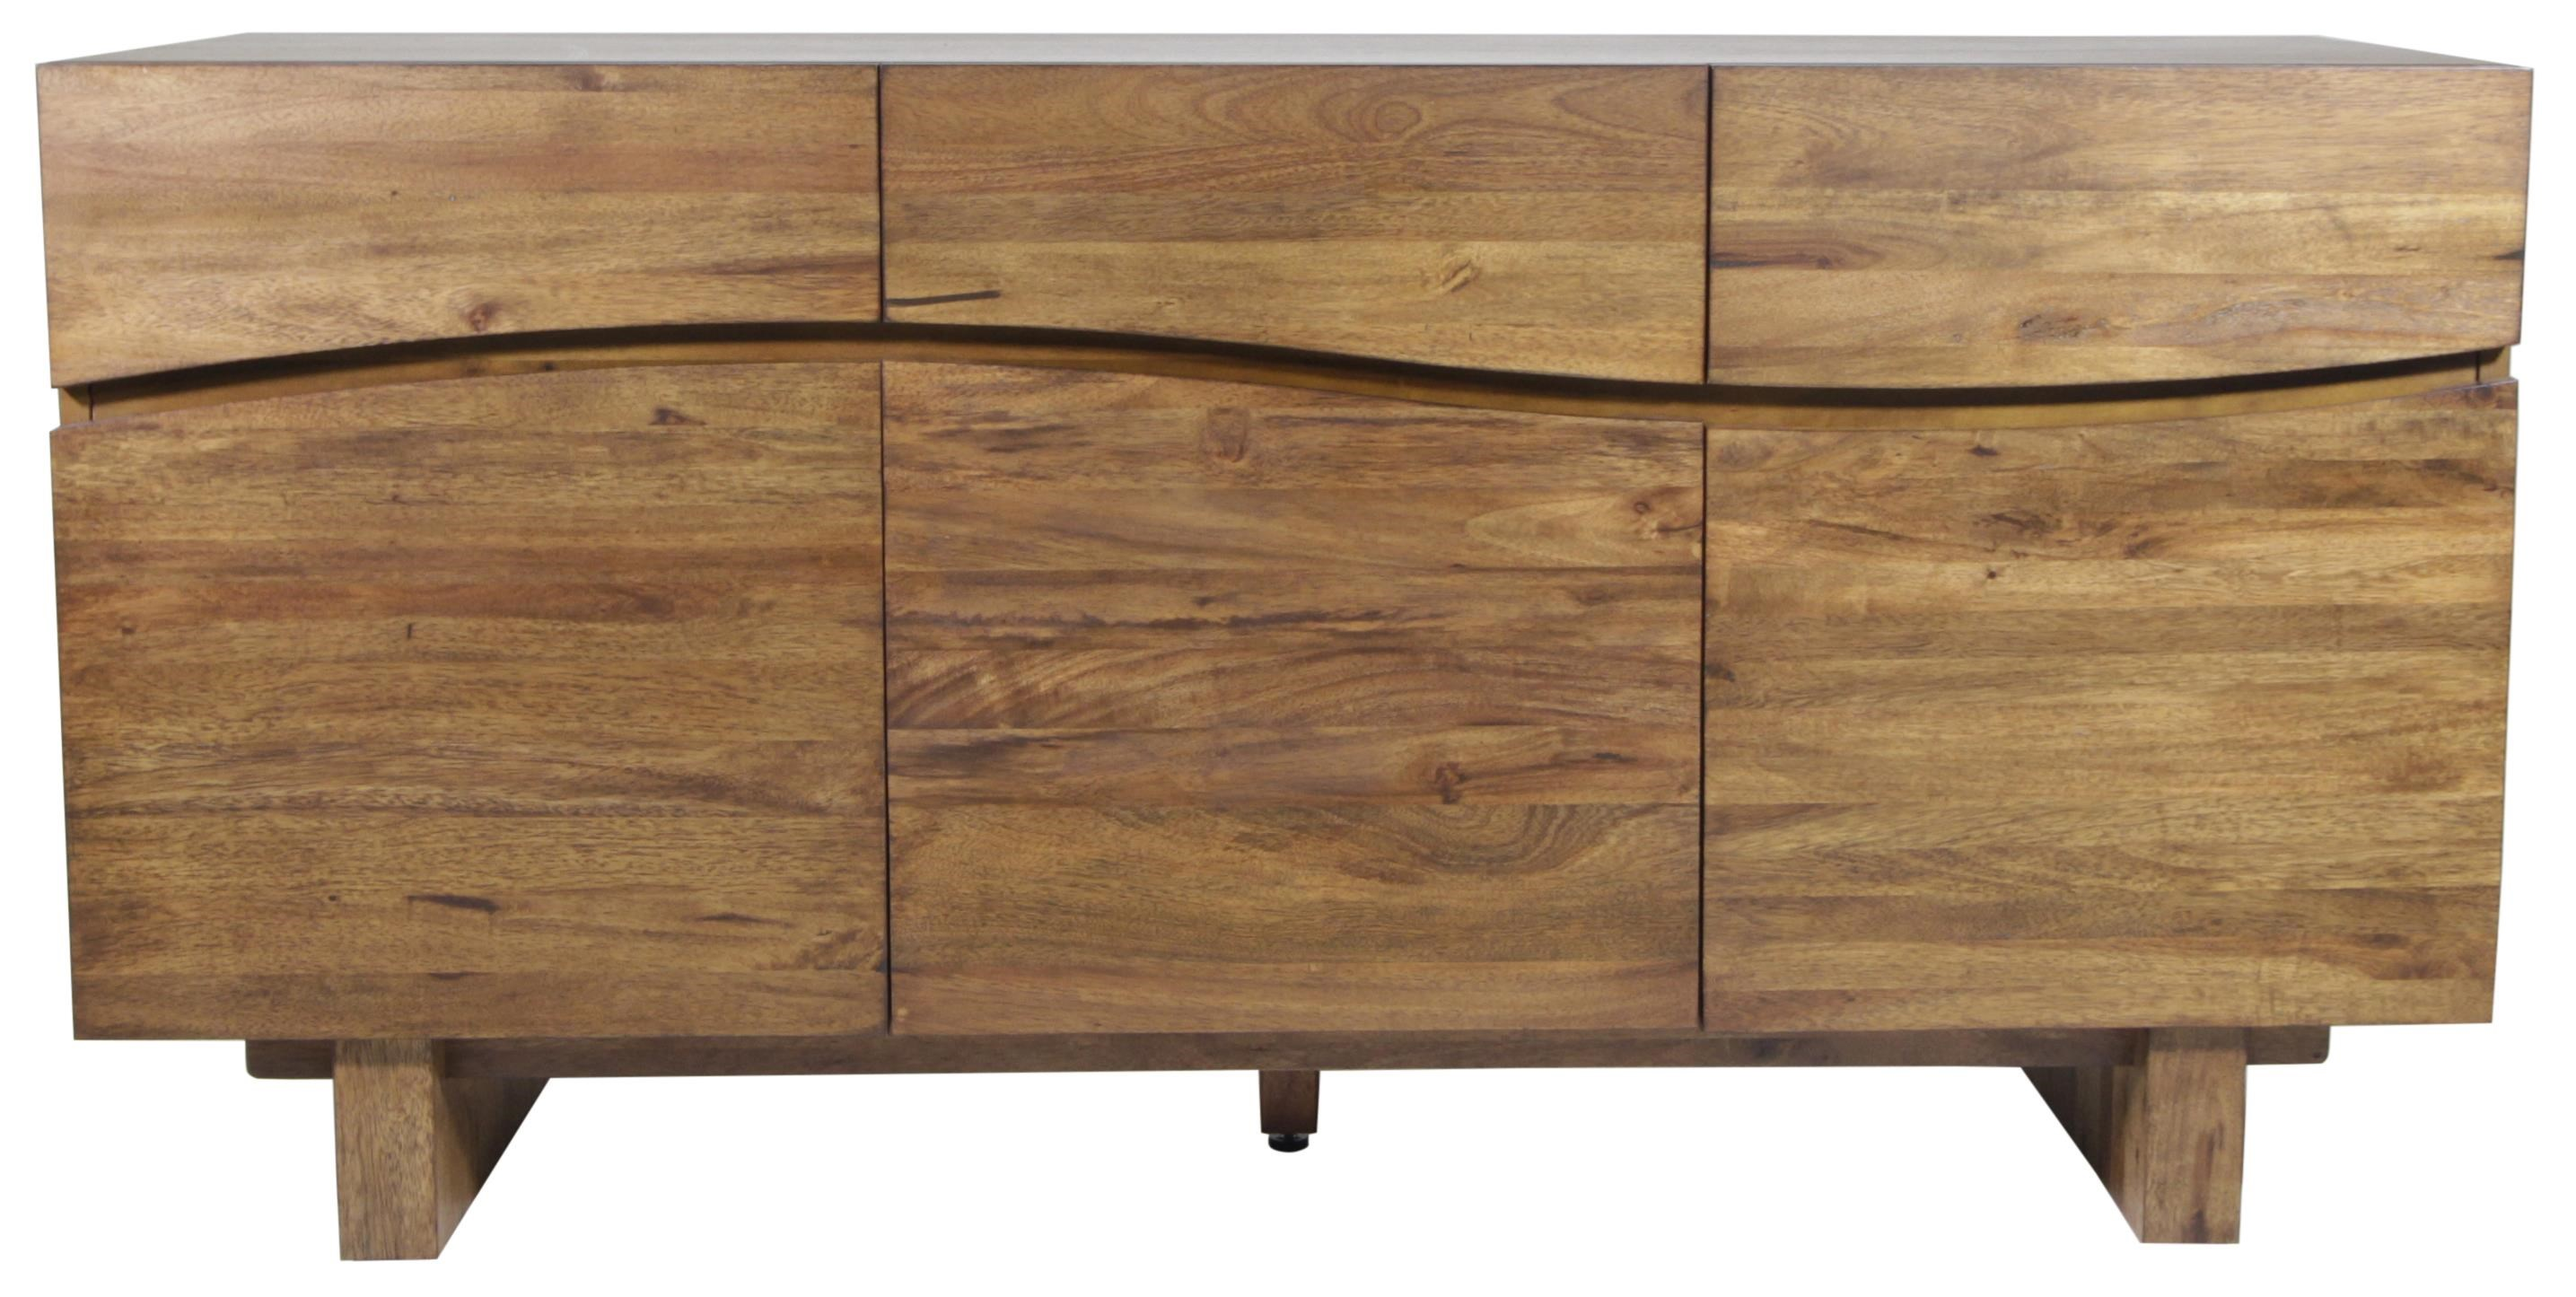 Ocean Sideboard by Modus International at Red Knot